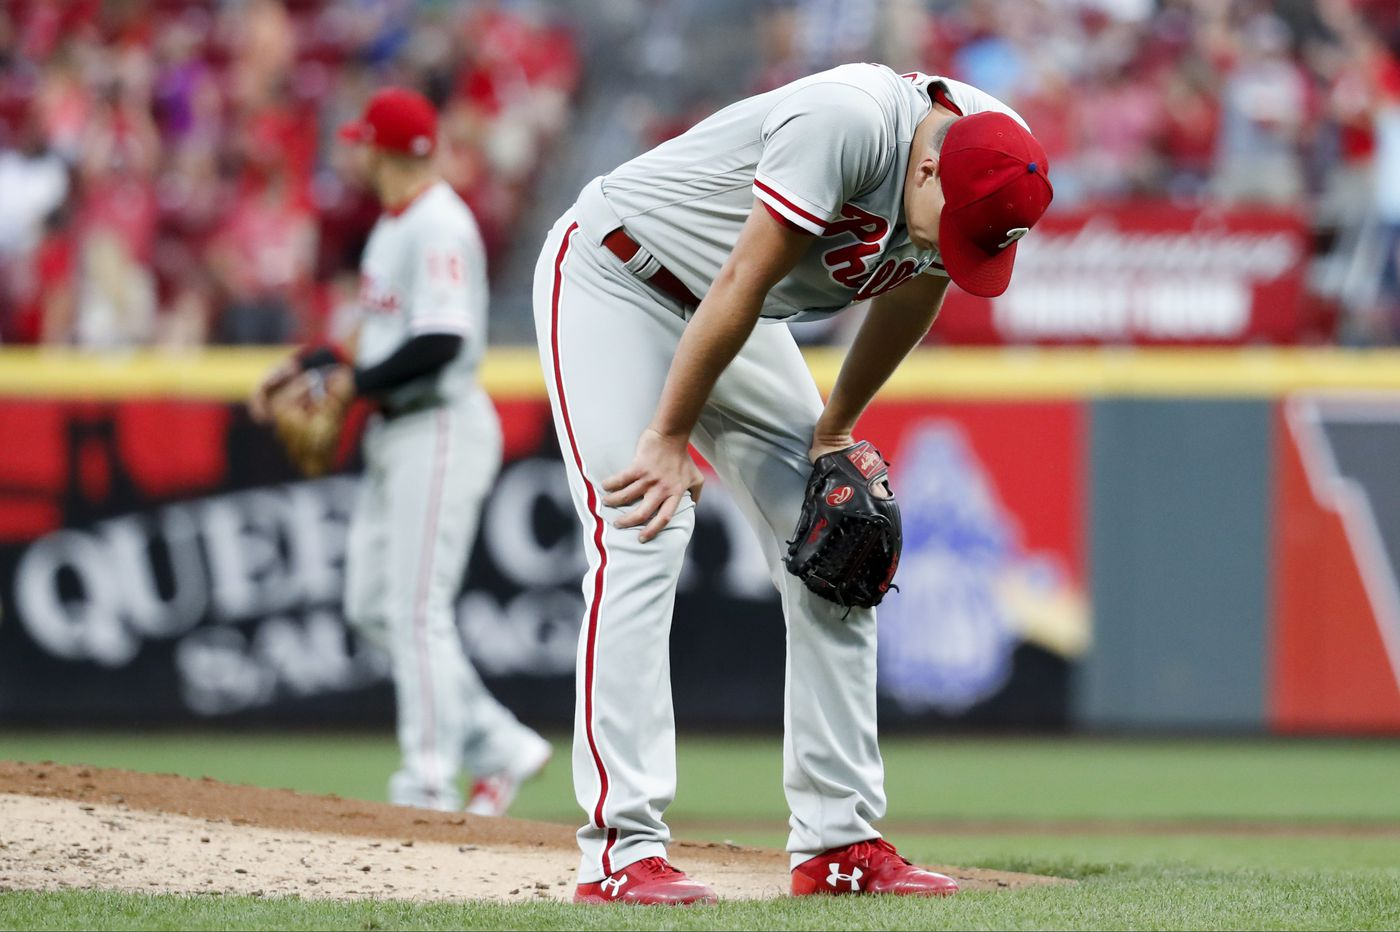 Nick Pivetta allows two homers in Phillies' loss to Reds